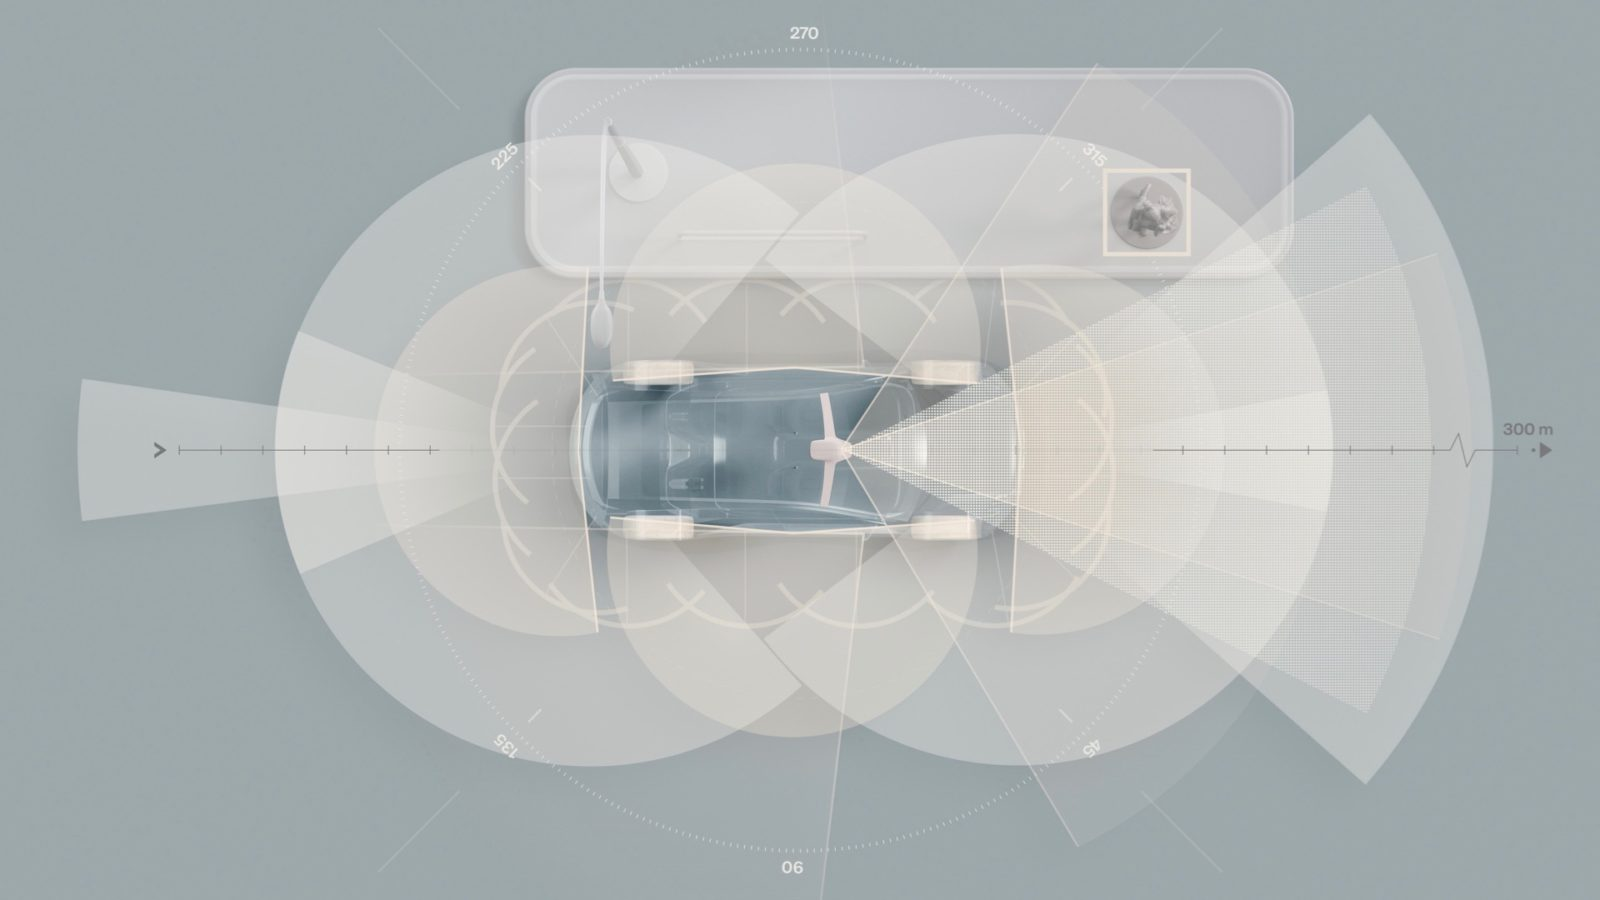 volvo-to-gather-real-time-data-from-customer-cars-to-refine-automated-systems